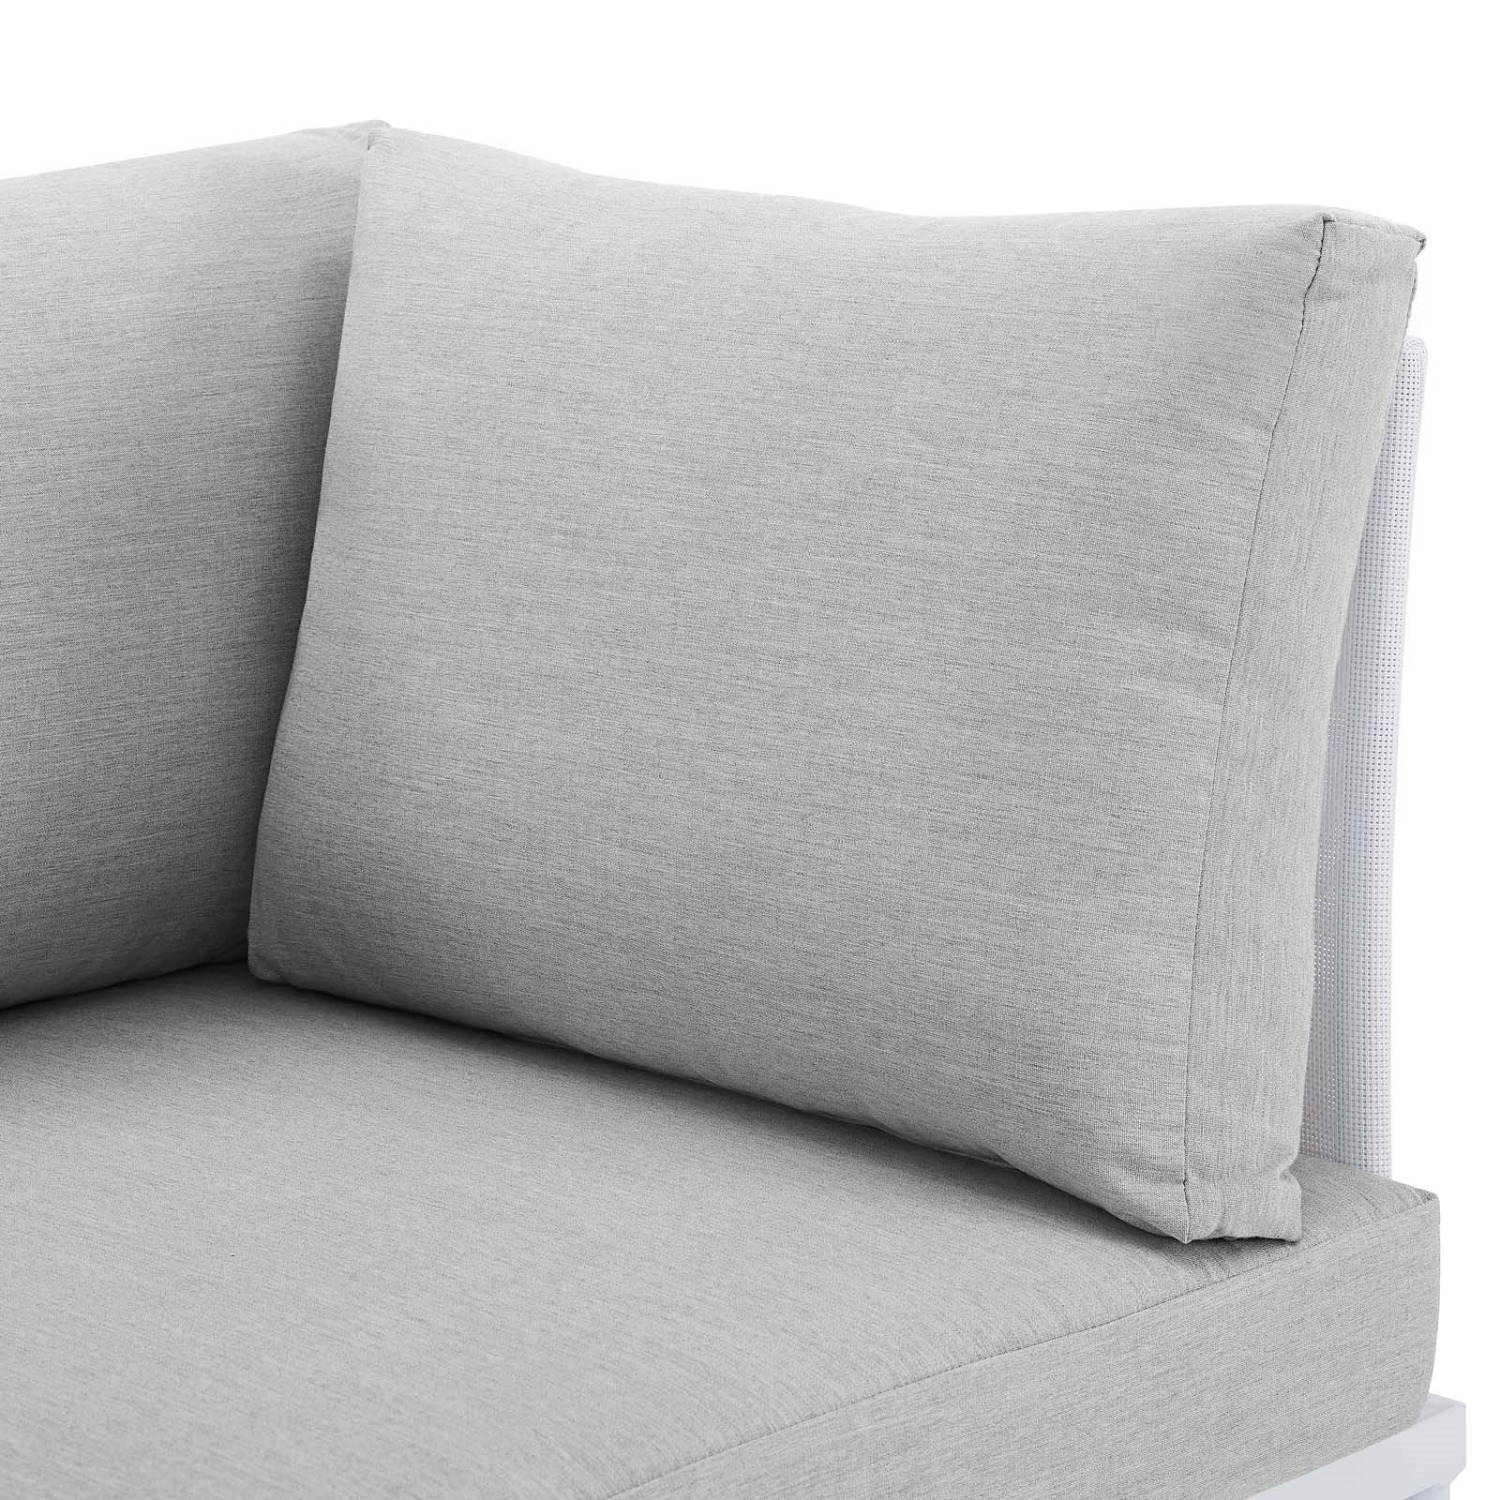 Outdoor Loveseat In White Frame & Gray Cushion - image-3